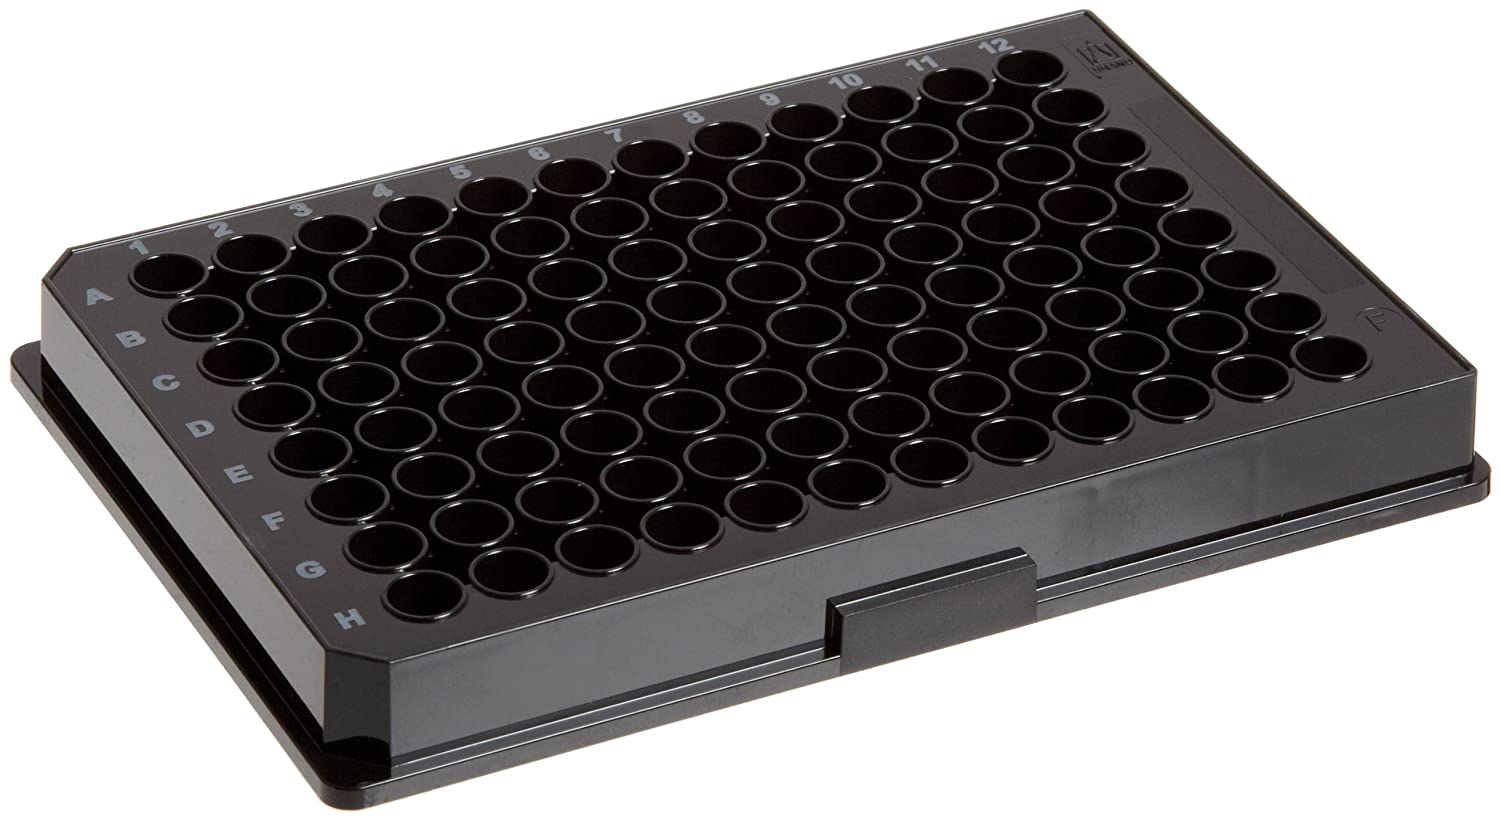 BrandTech 781608 Polystyrene F-Bottom 96 Well BRANDplates pureGrade Non-Treated Microplates, Non-Sterile, 350 microliter Well Capacity, Black (Pack of 100)